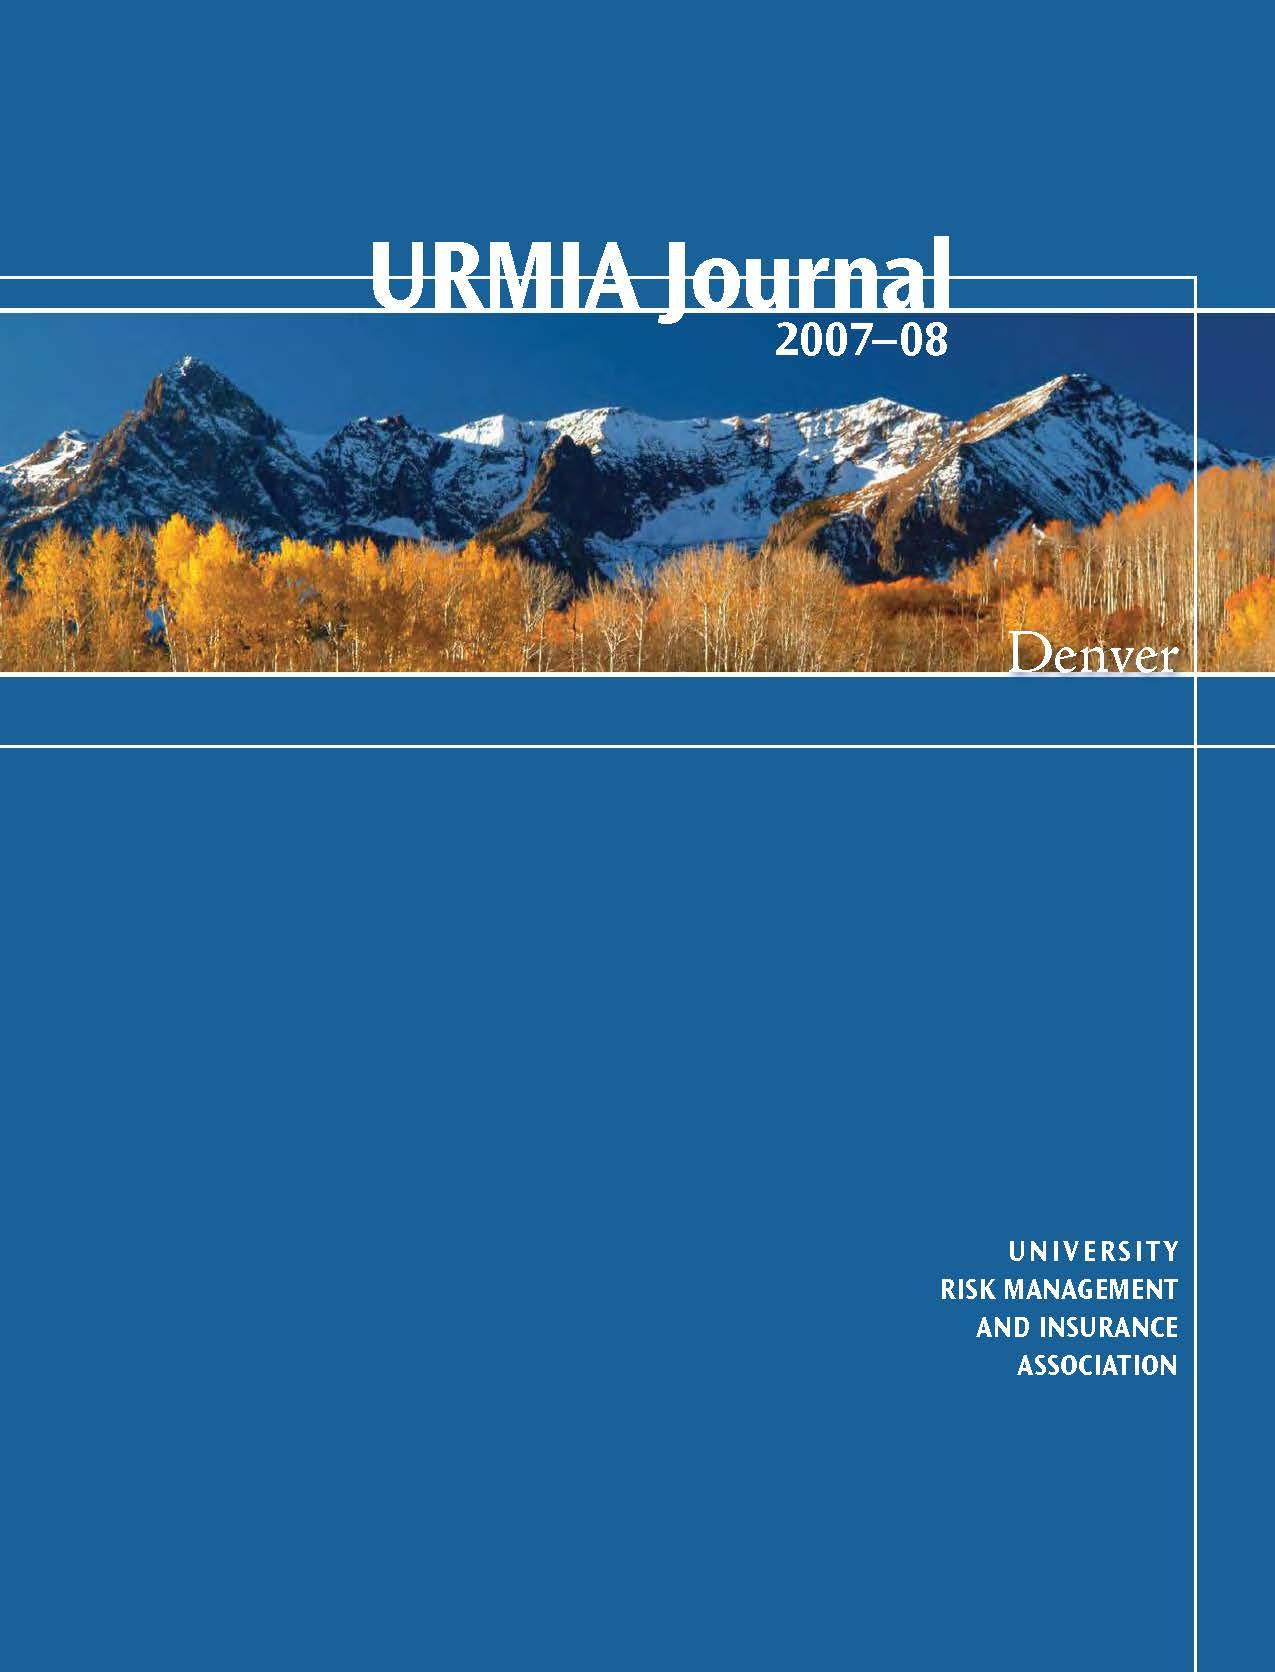 2007 URMIA Journal